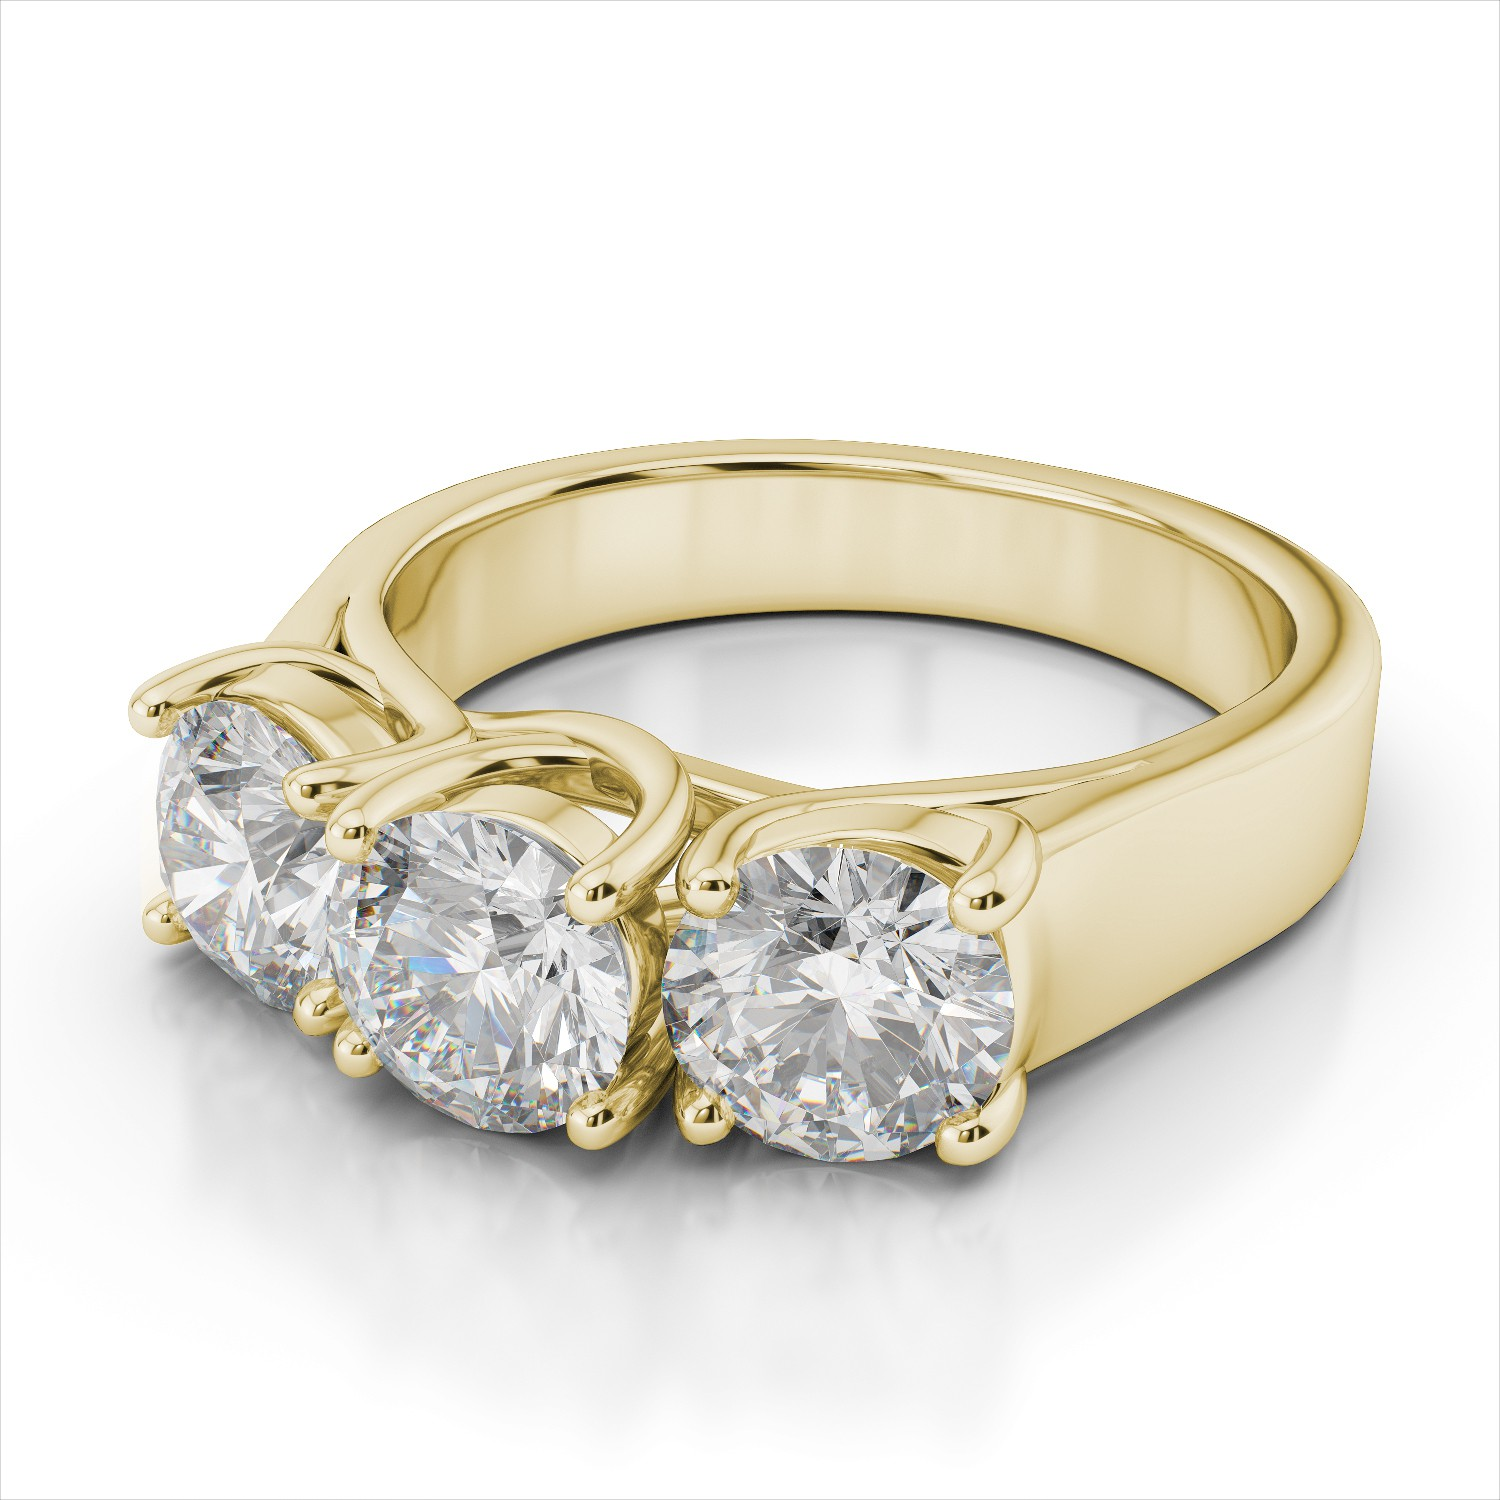 online engagement crown gold shop white rings rounded ring ersa home diamond giannis